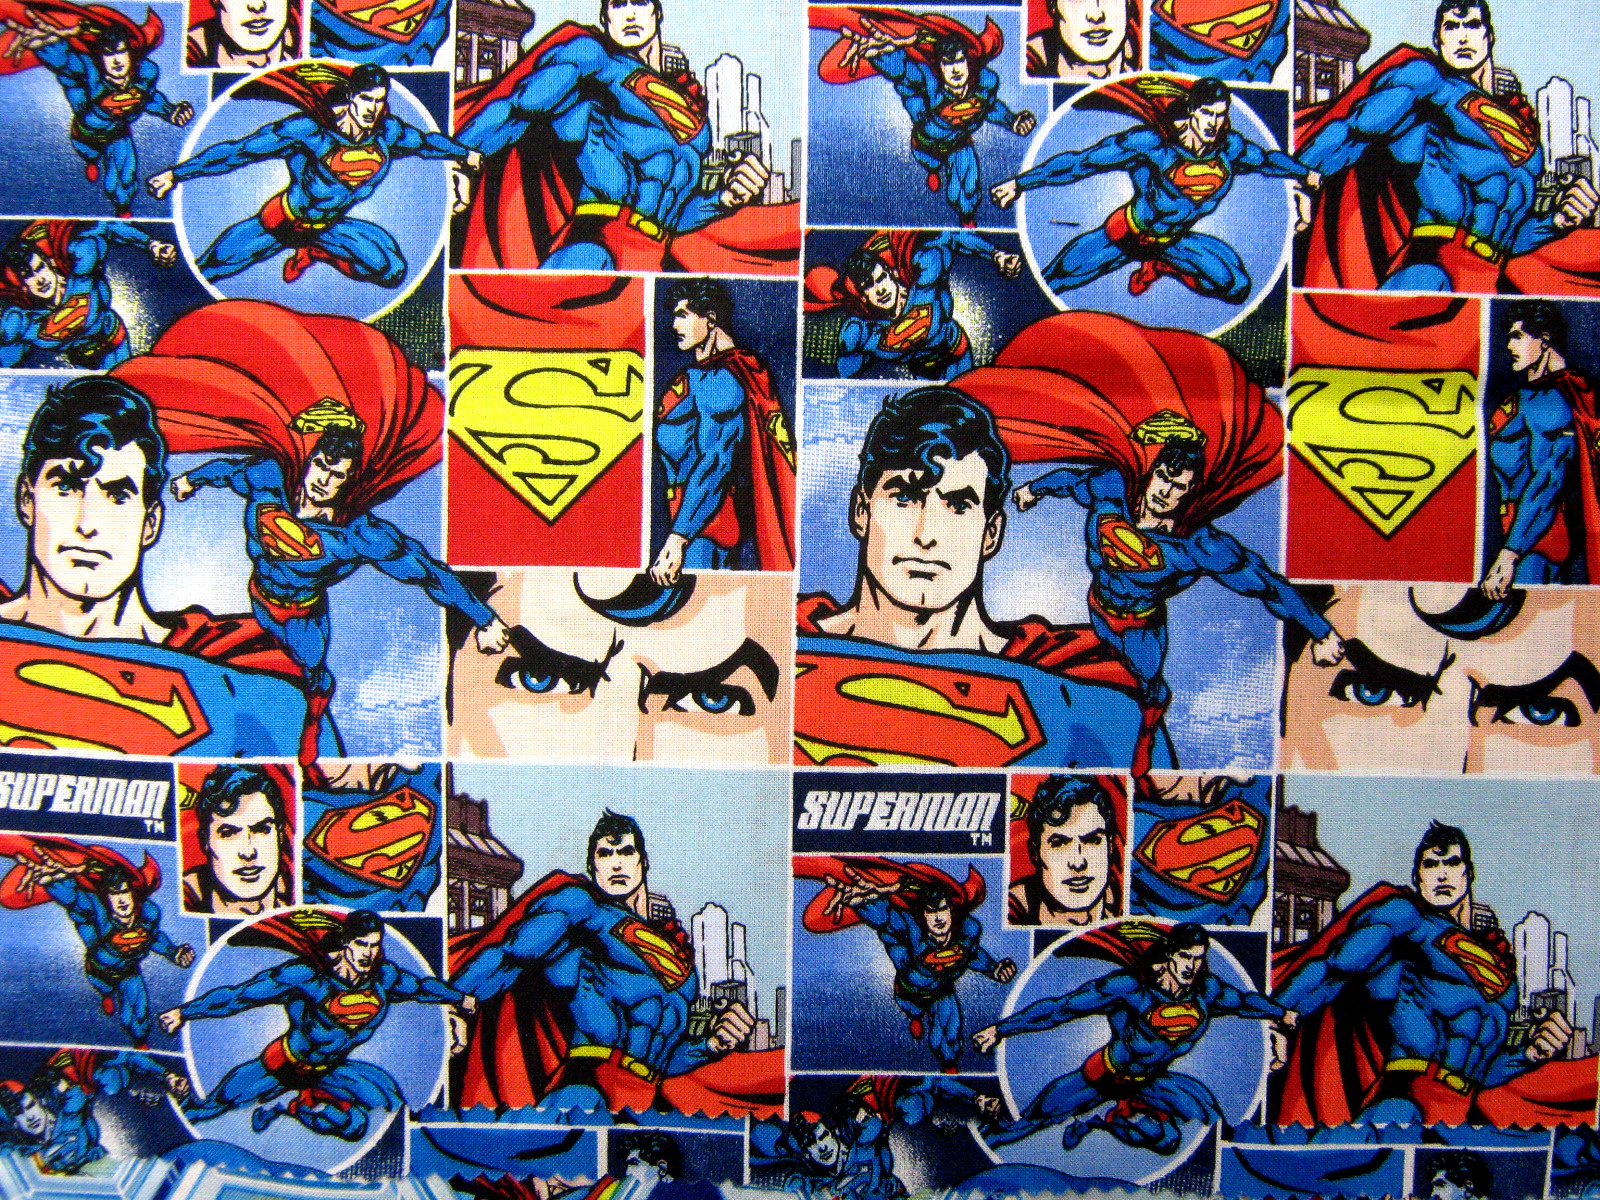 superman comic art wallpaper - photo #30